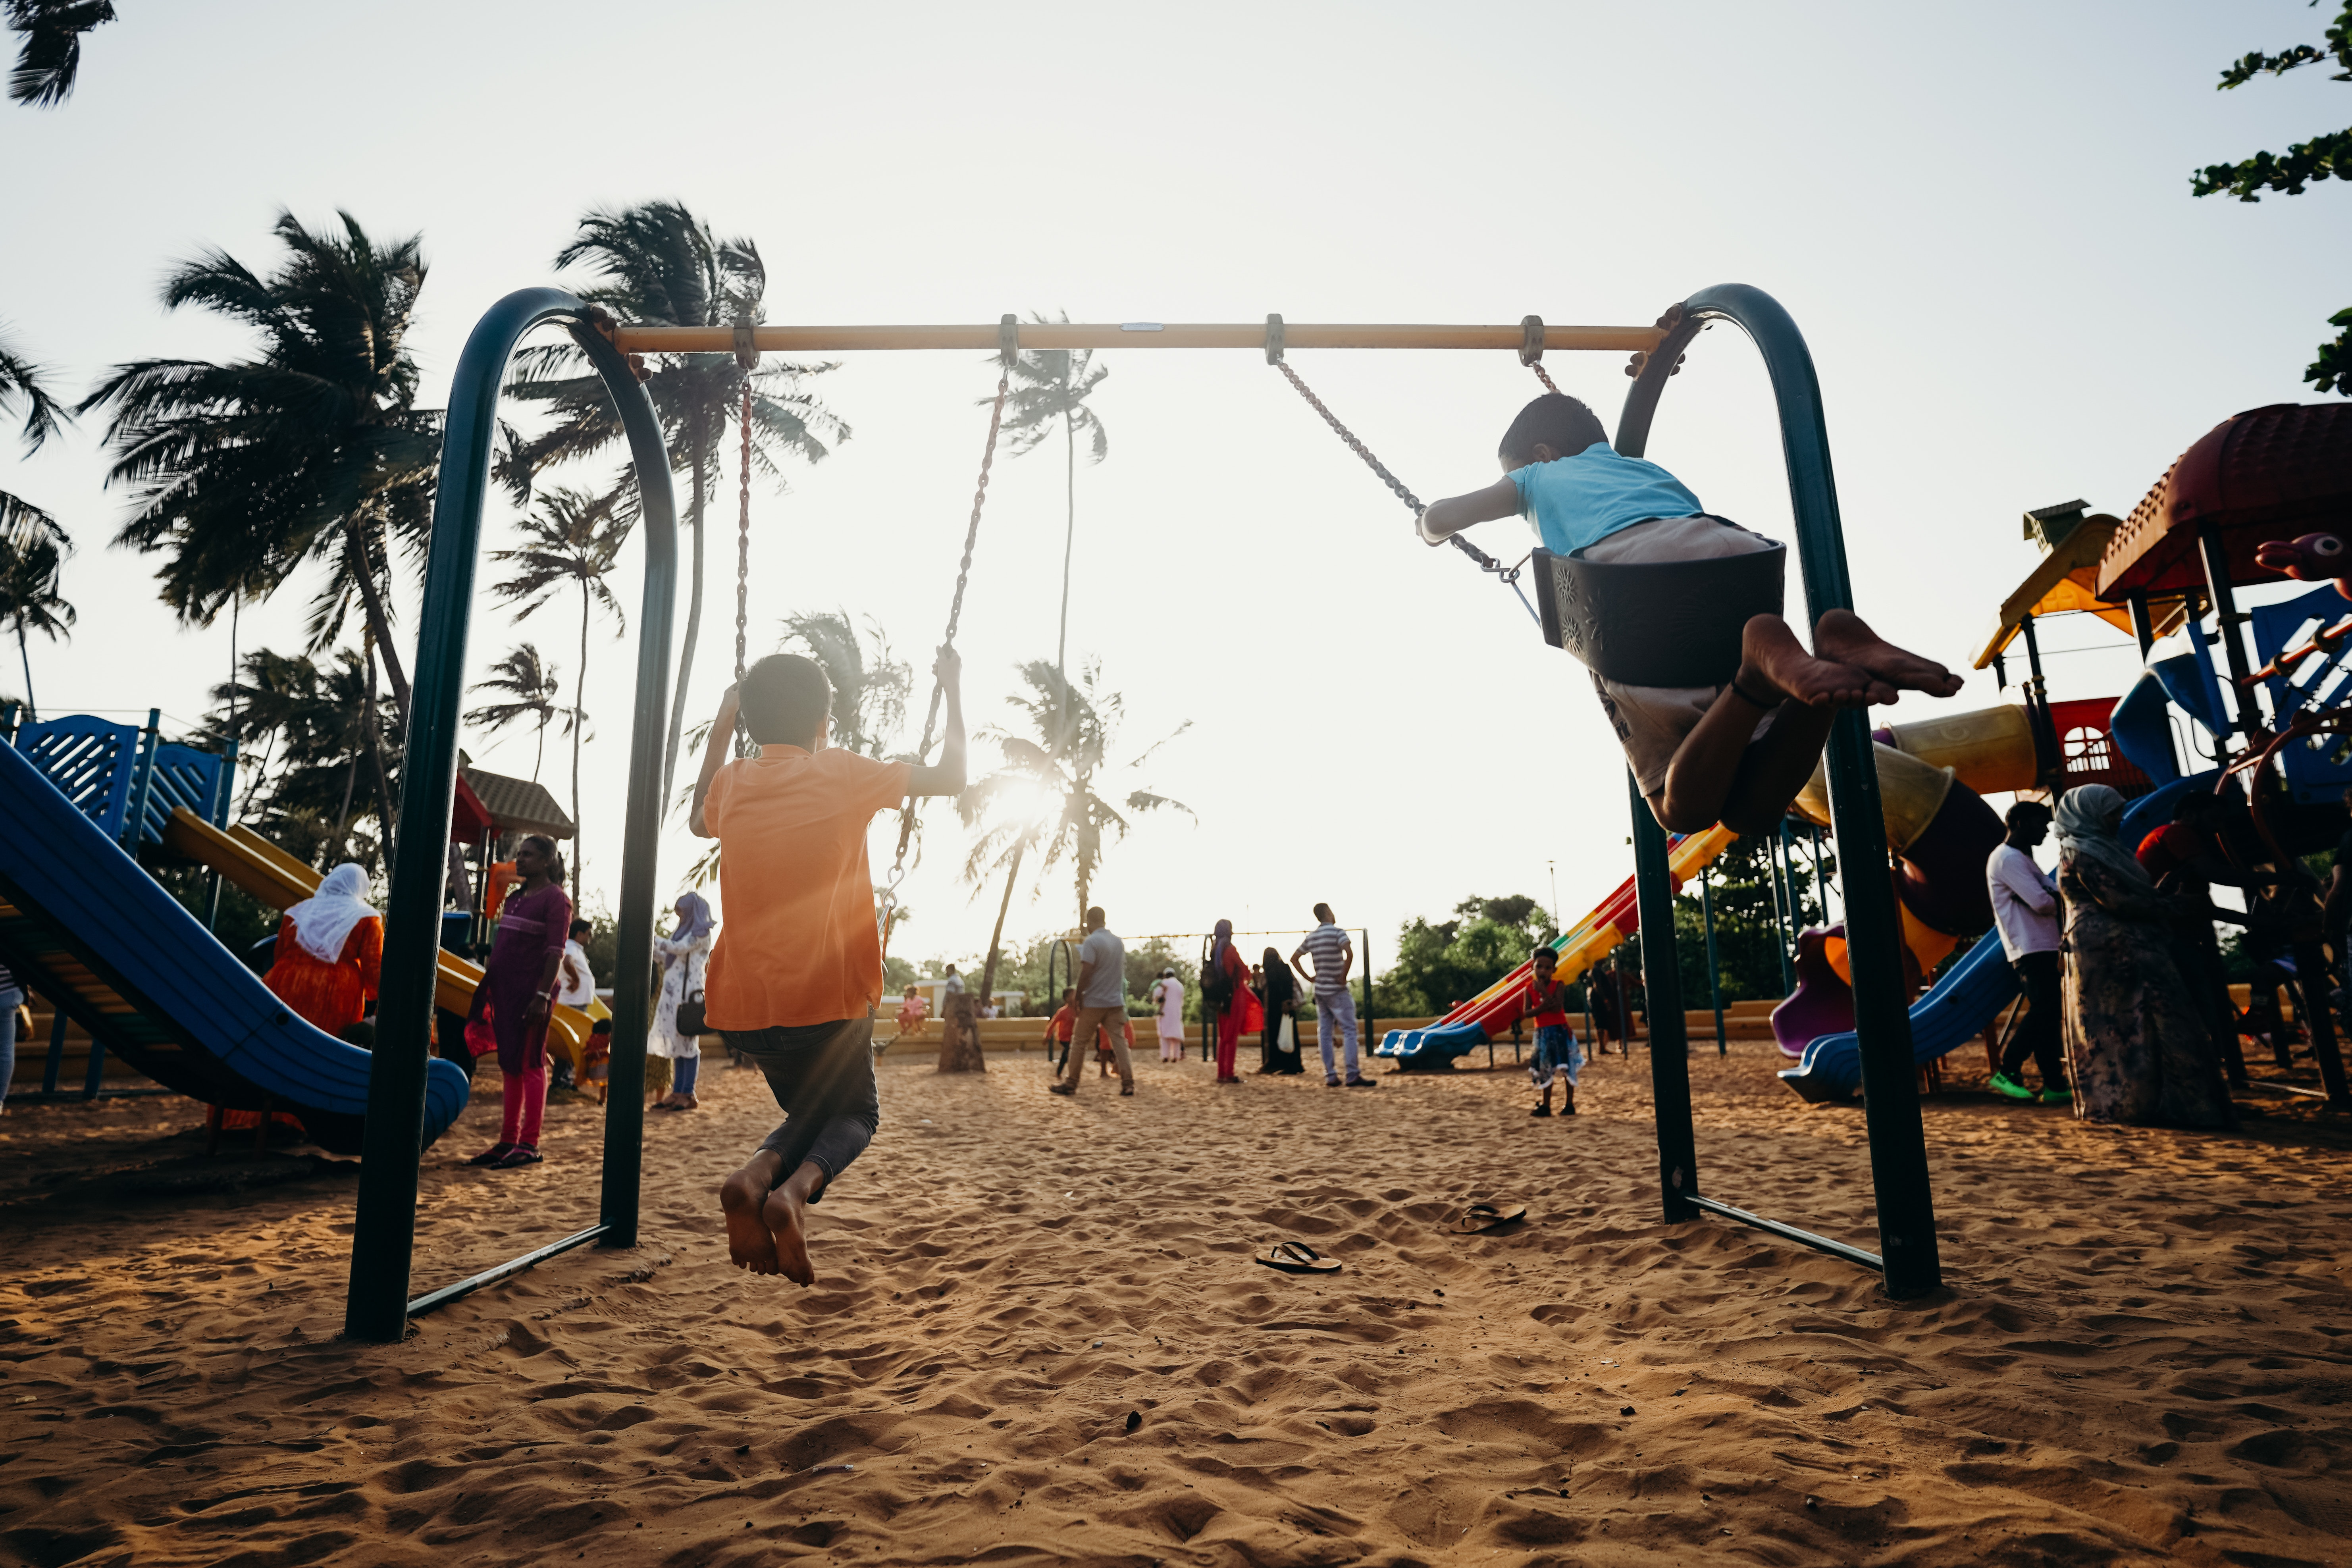 toddlers_playing_on_swings